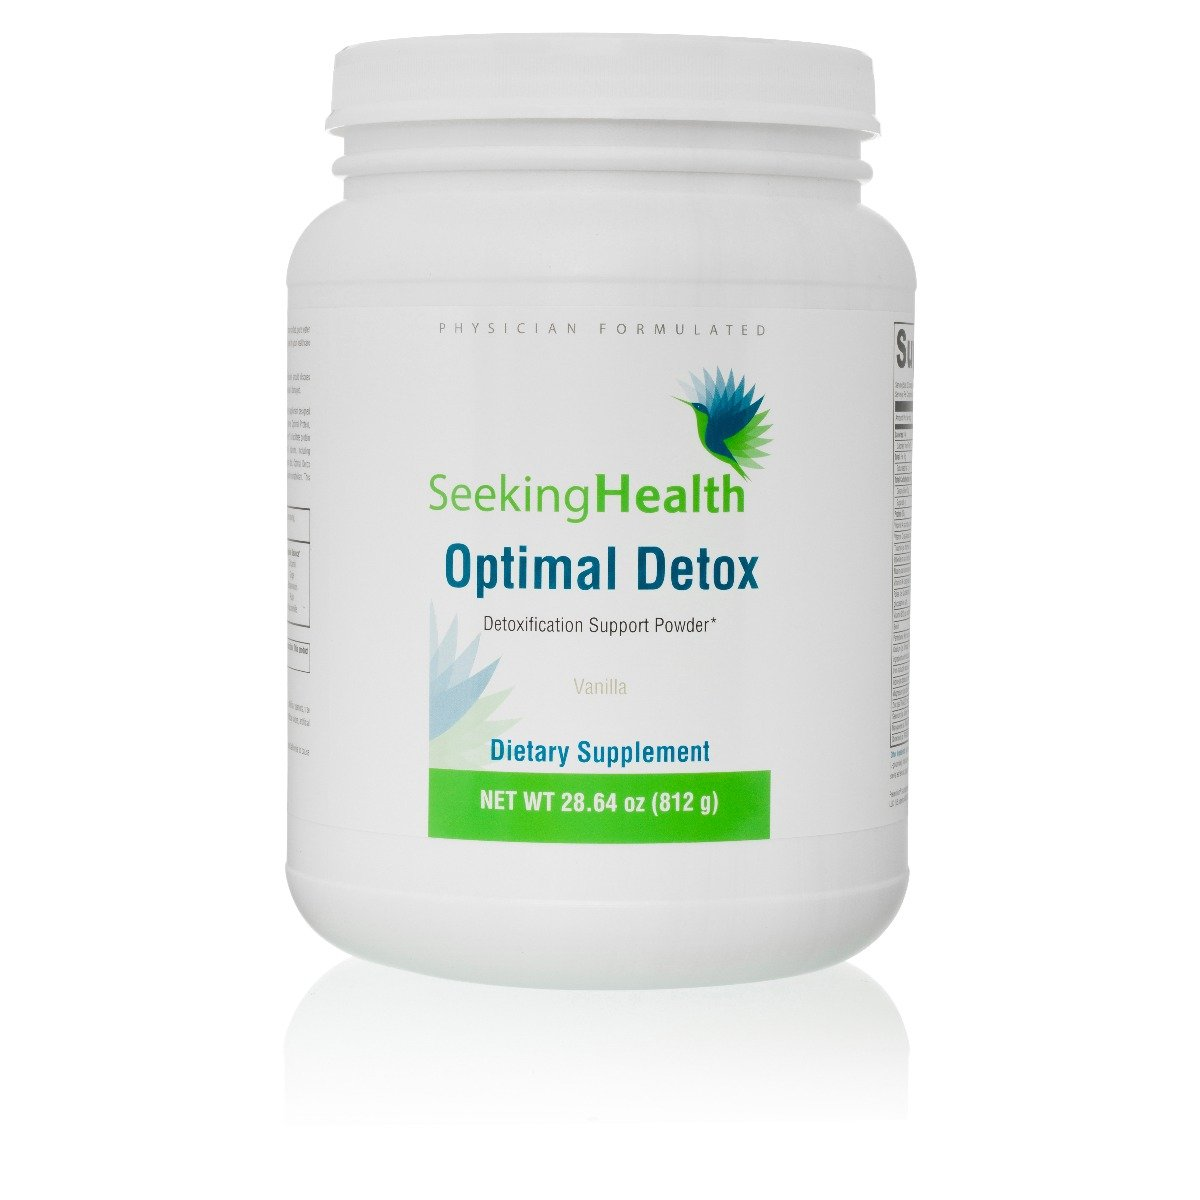 Optimal Detox | Vanilla | 812g